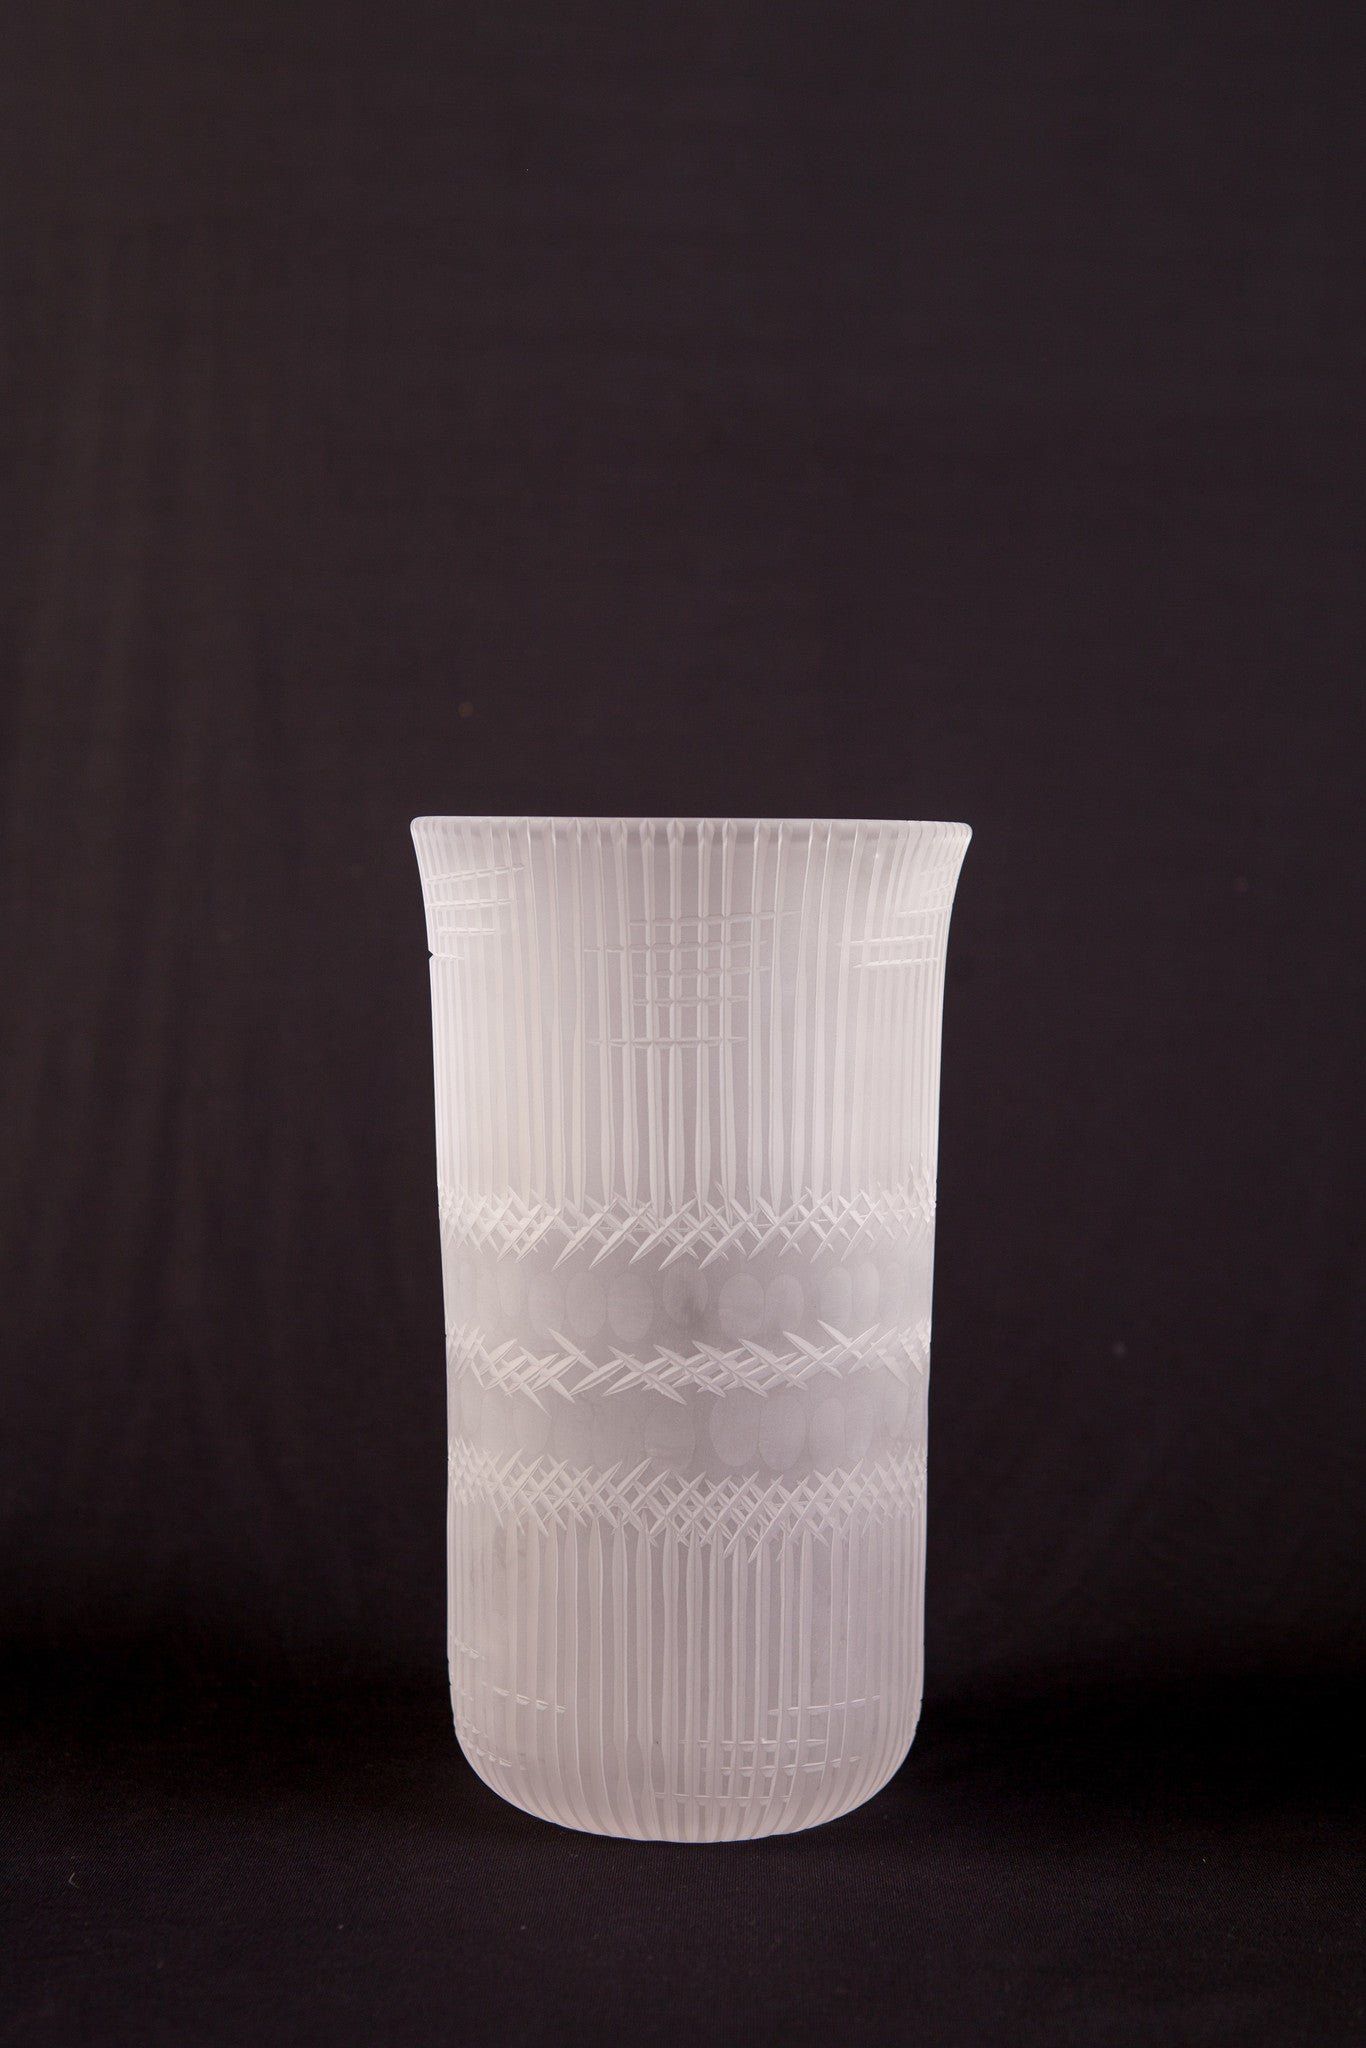 Brien Strancar Cut Glass Cylindrical Vase (Large)